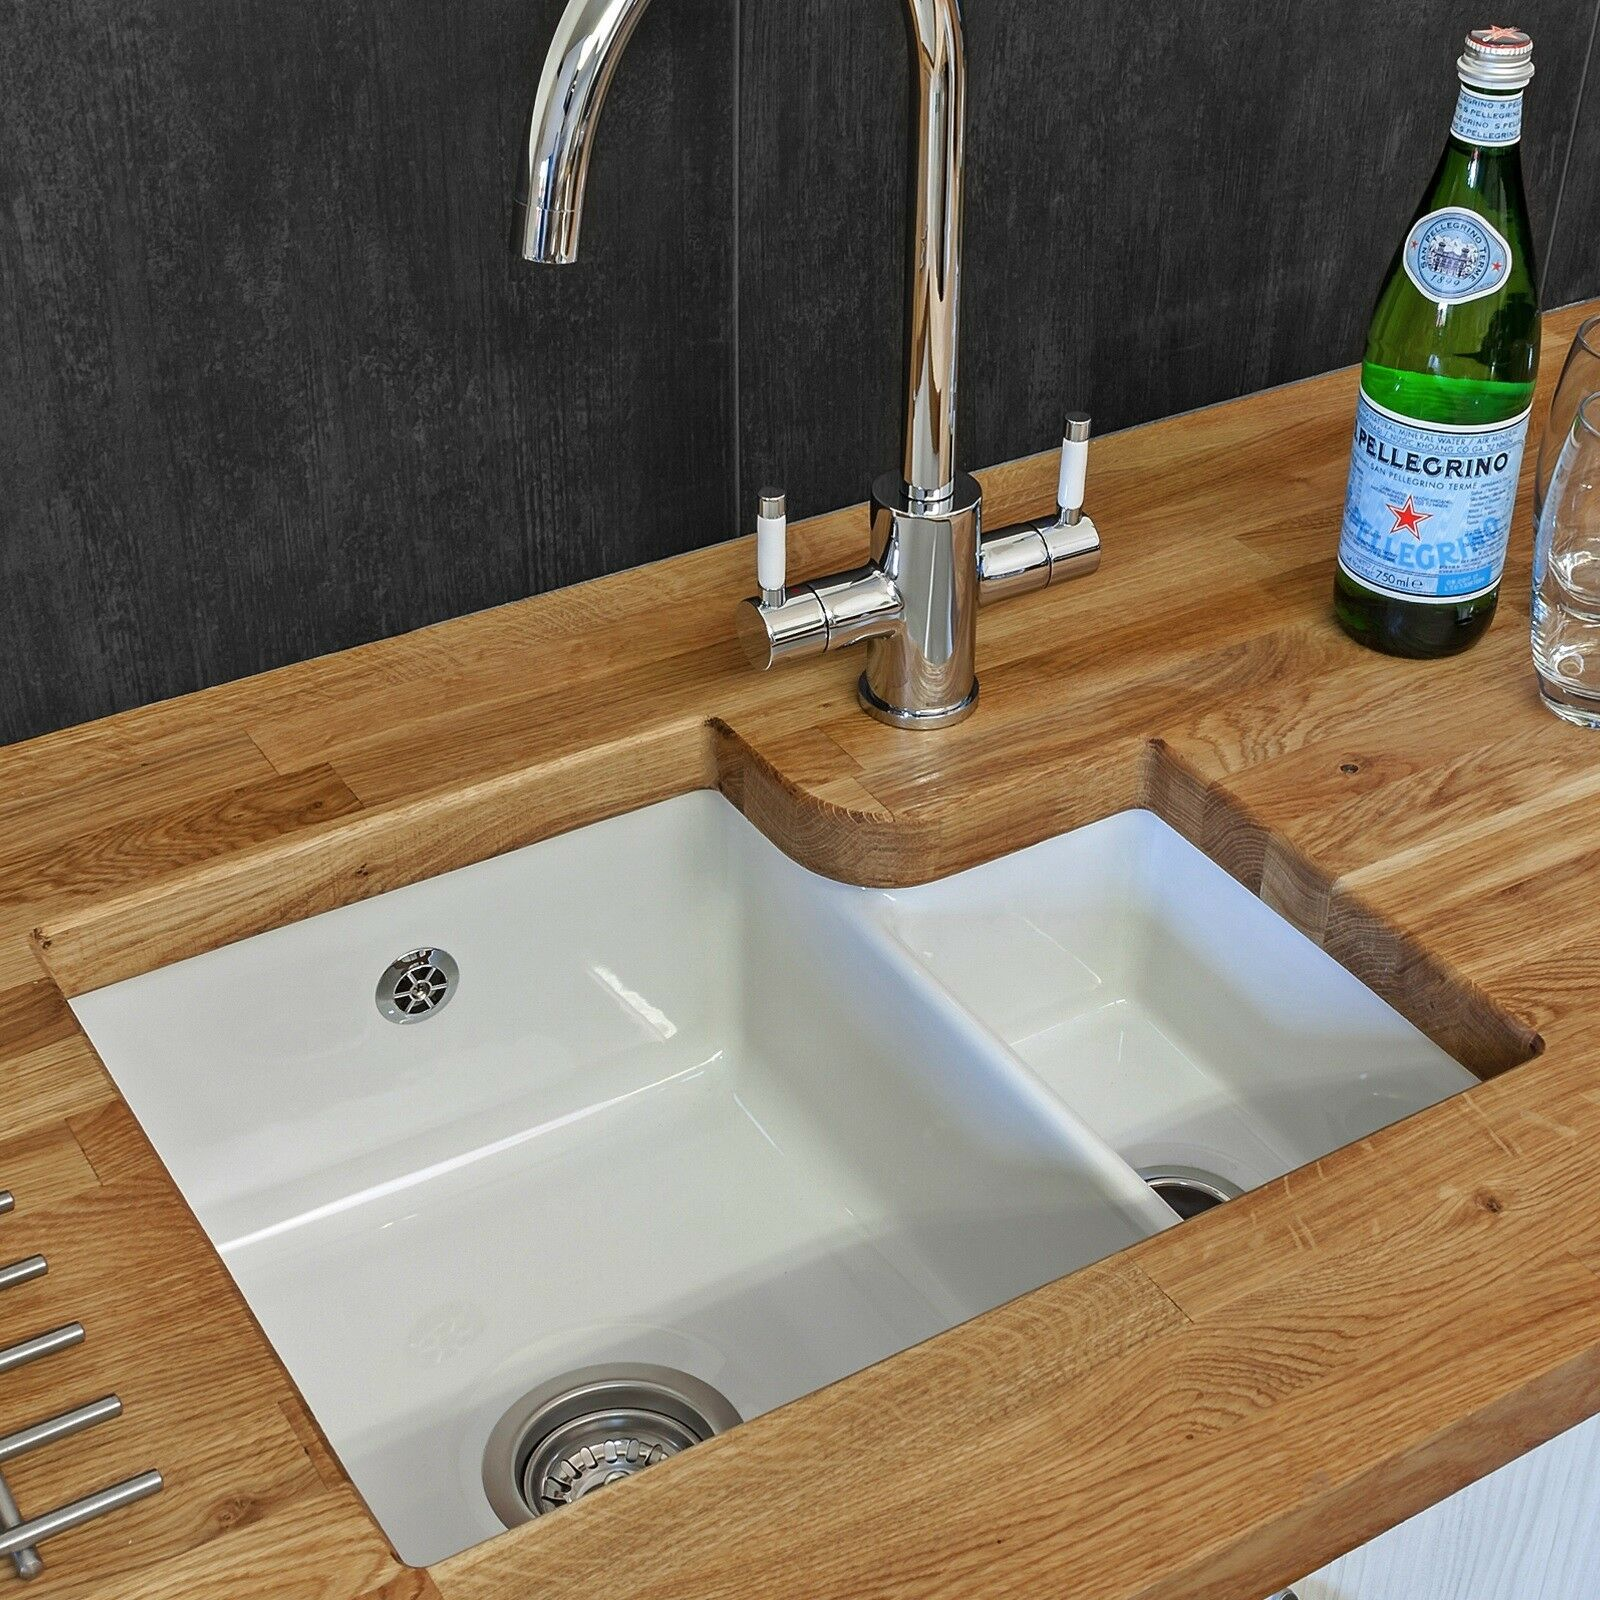 Reginox Tuscany 1 5 Kitchen Sink Bowl White Ceramic Undermount 600mm Waste Of 3only 2 Available